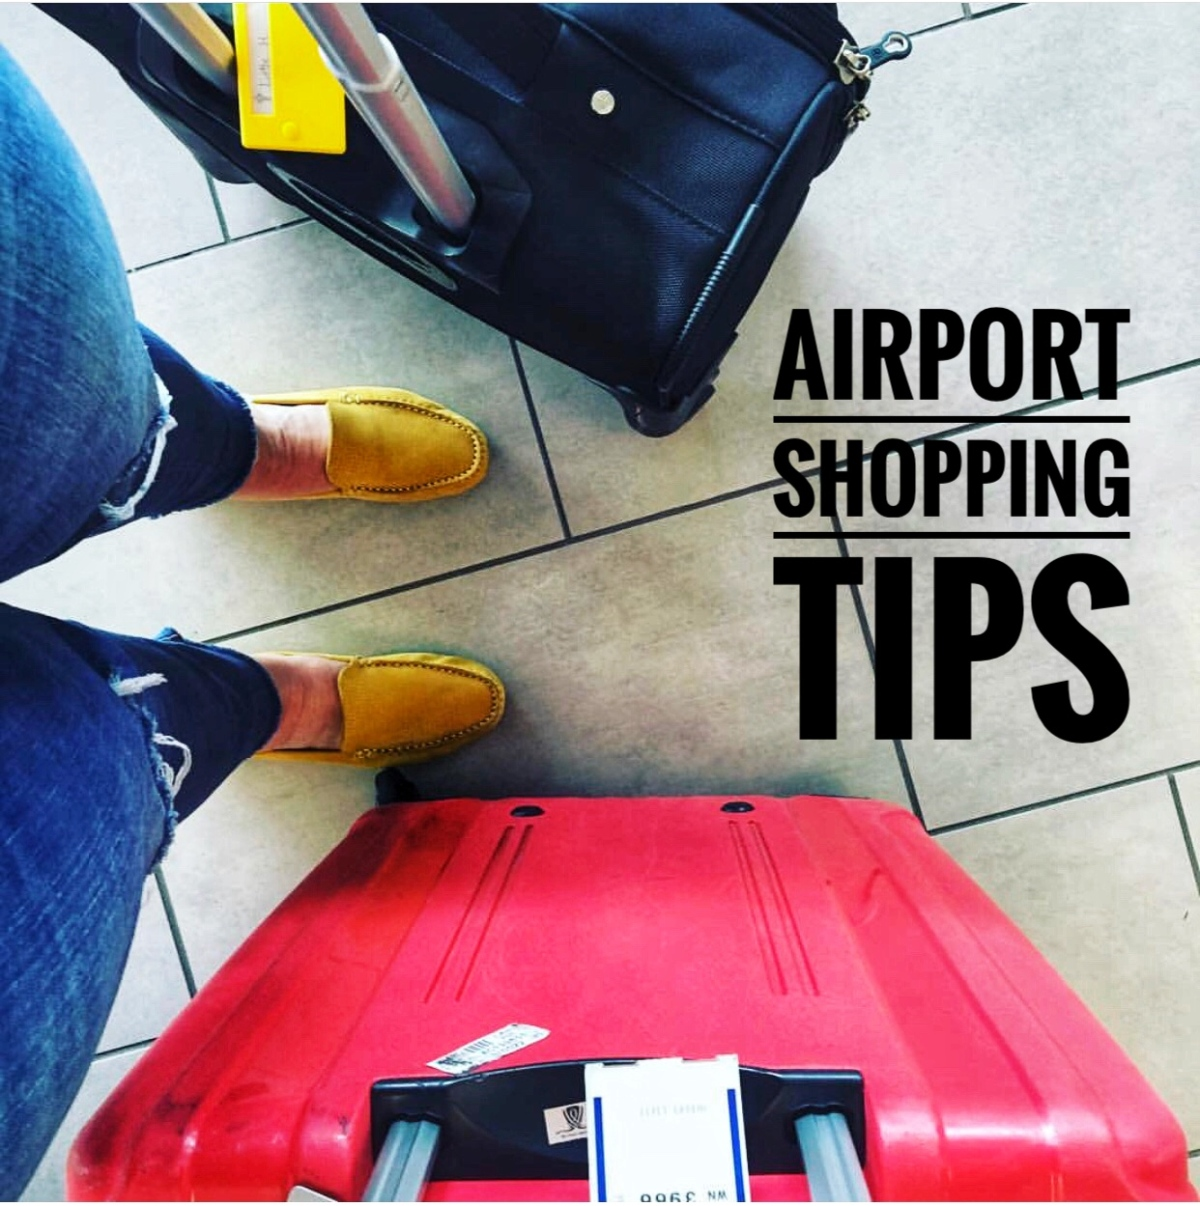 Airport Shopping Tips